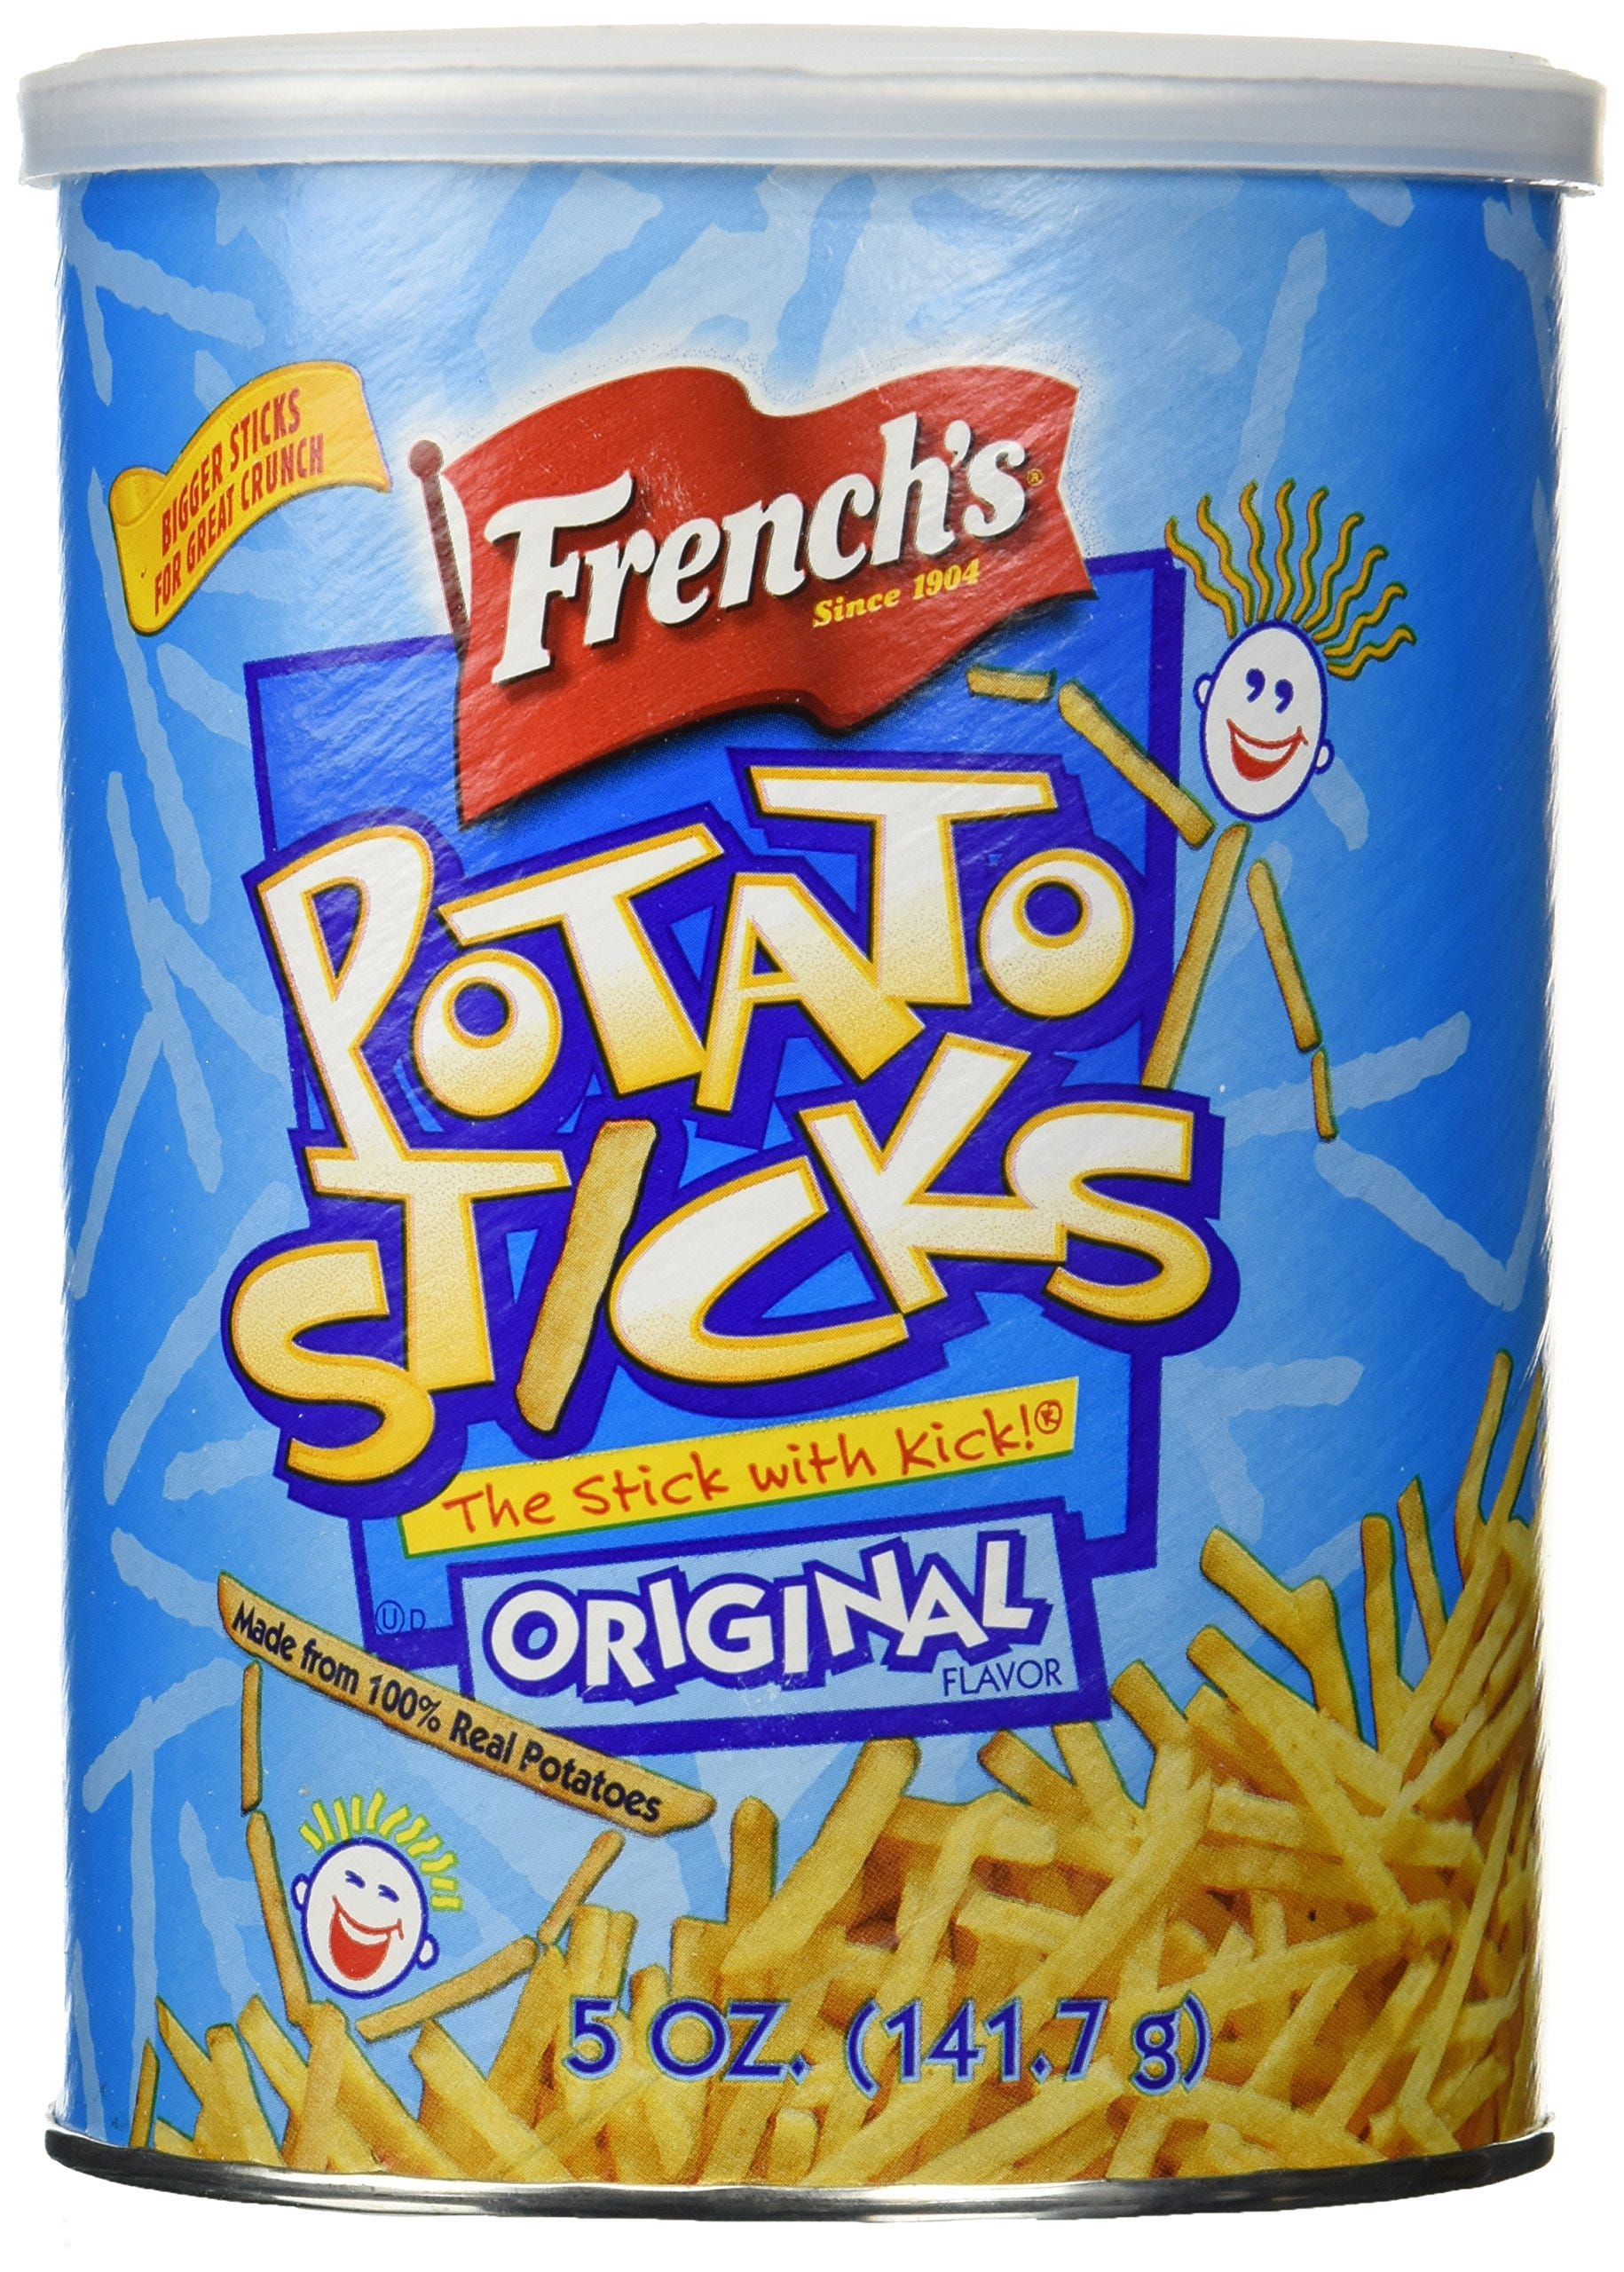 Childhood Snacks From The 90s & 2000s Available Online